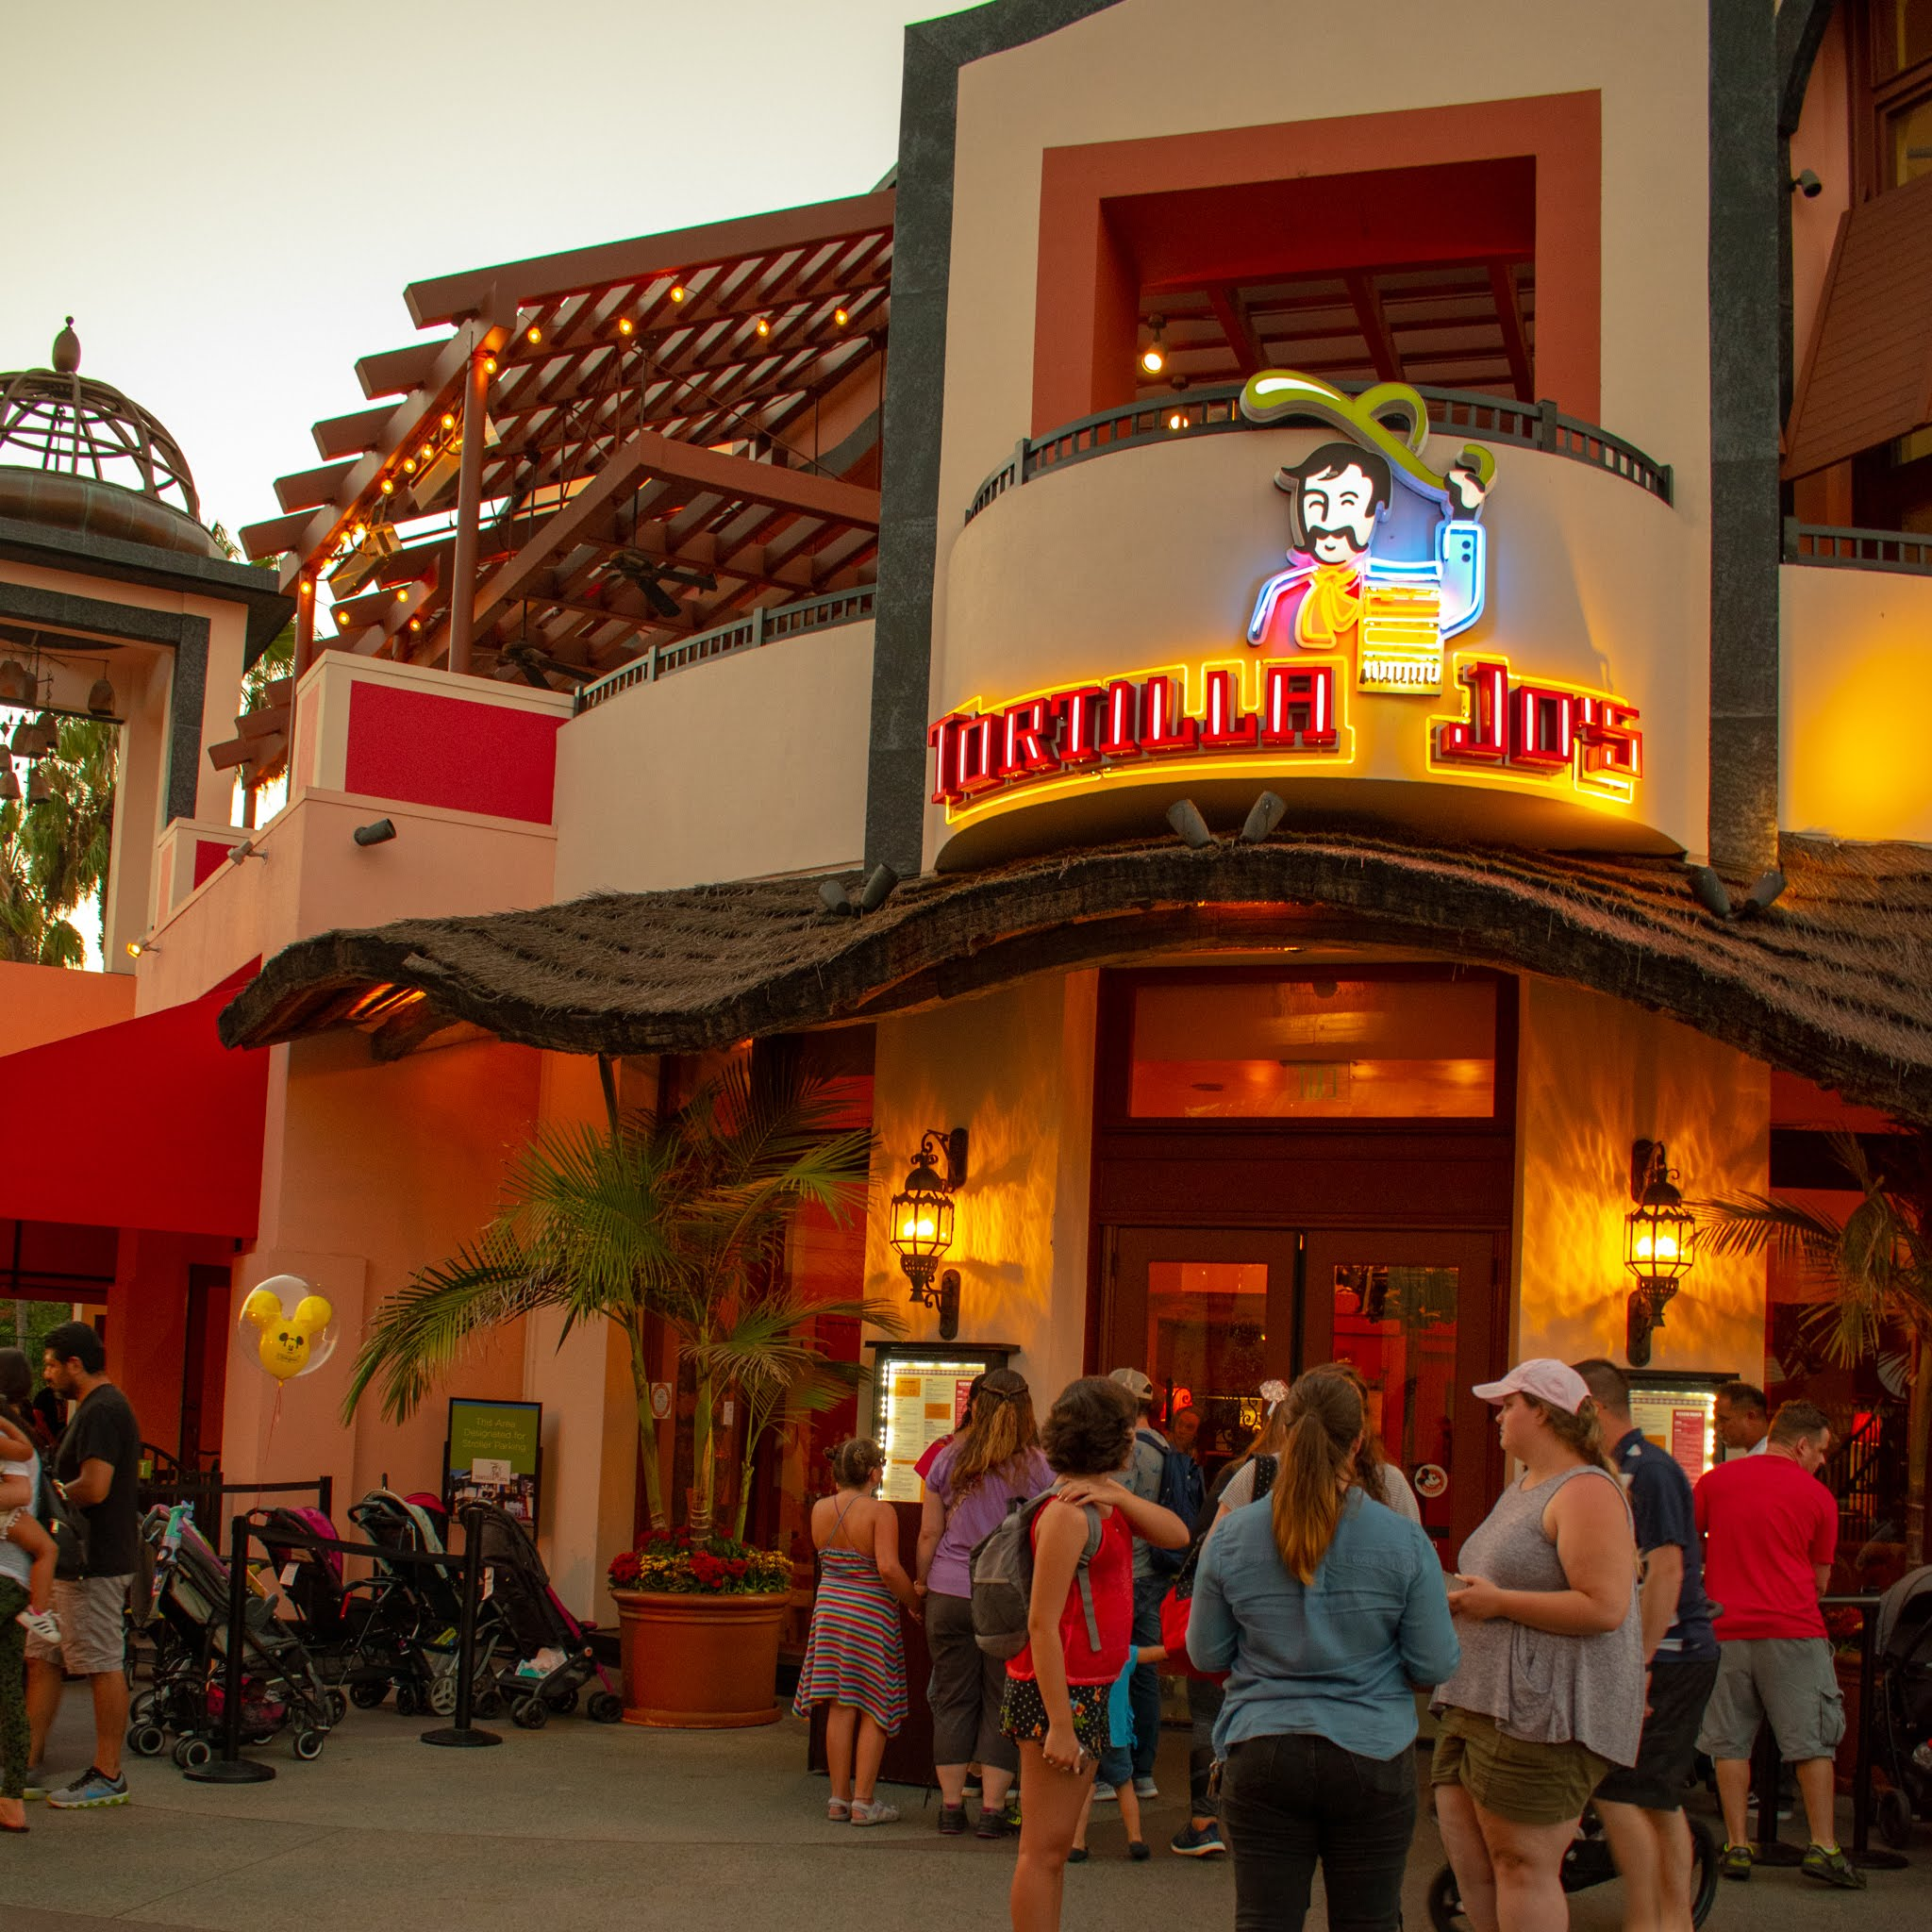 Uprooted-Traveler-Vegan-Disney-Land-tortilla-jo's-mexican-downtown-disney-vegan.jpg